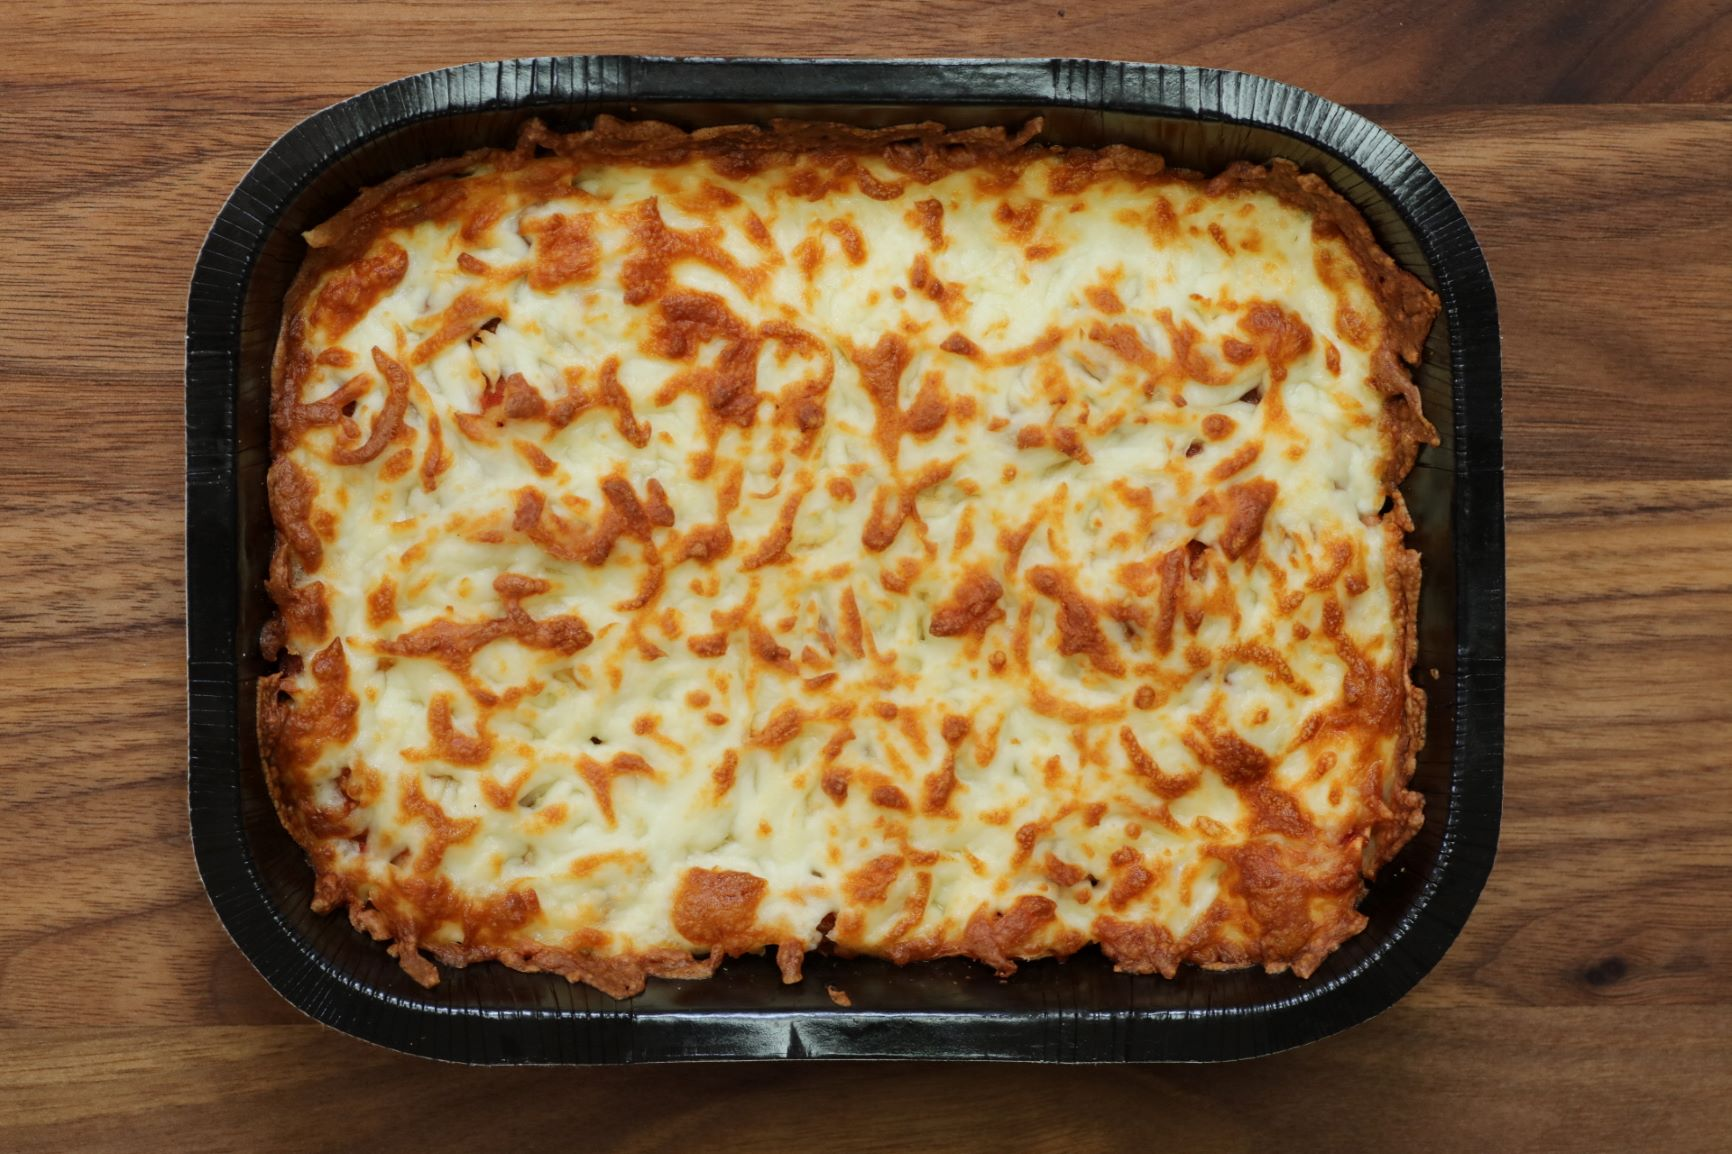 CASSEROL OF LASAGNE